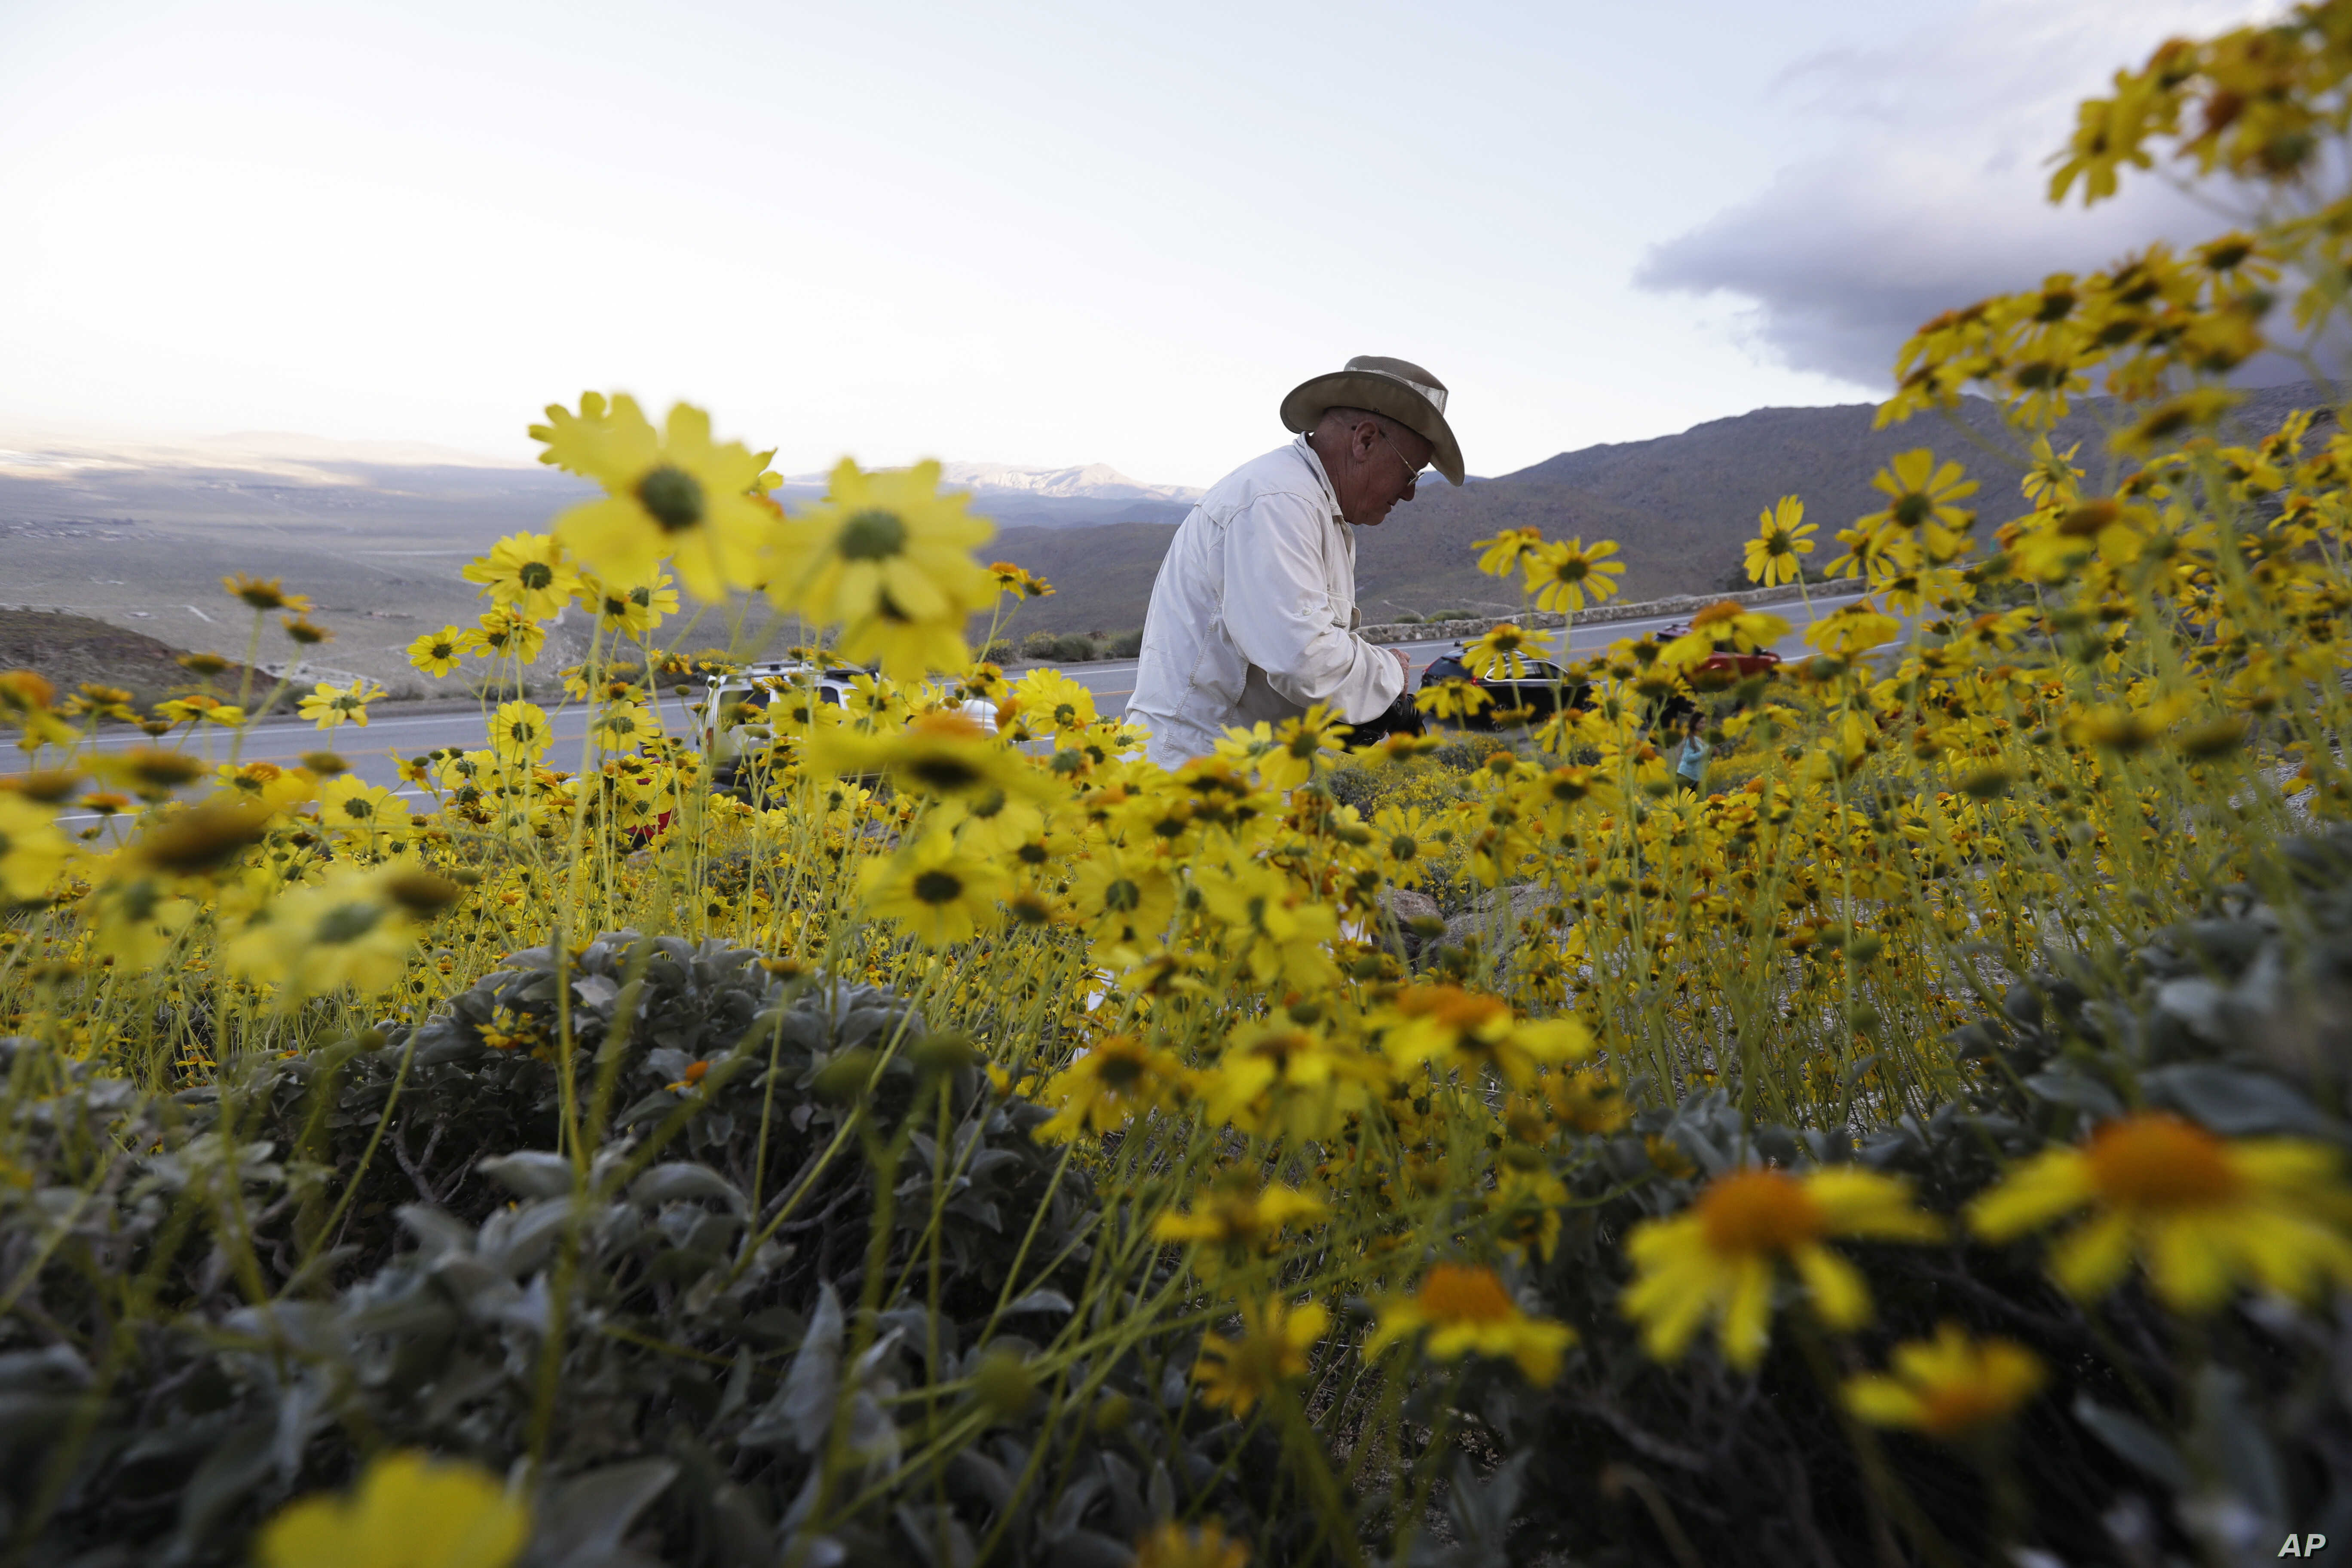 Retired California state park ranger Jim Long, of San Clemente, Calif., hunts for pictures among blooming desert shrubs in Borrego Springs, Calif., March 27, 2017. Rain-fed wildflowers have been sprouting from California's desert sands after lying do...